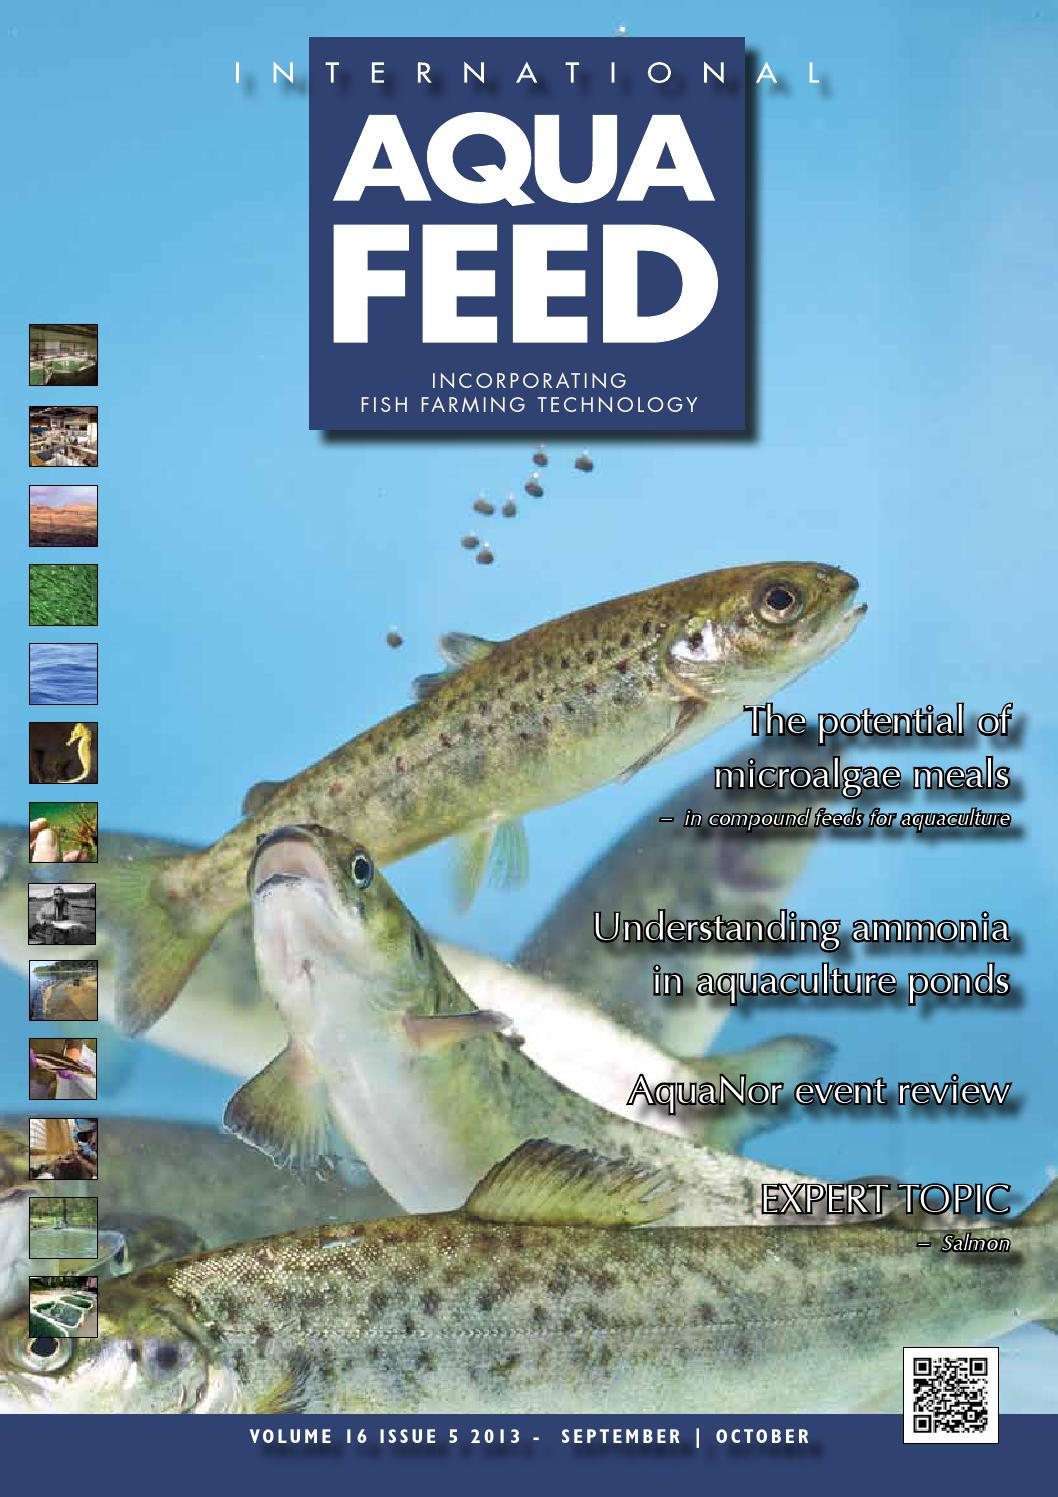 Sepoct 2013 international aquafeed by perendale publishers ltd sepoct 2013 international aquafeed by perendale publishers ltd issuu fandeluxe Choice Image